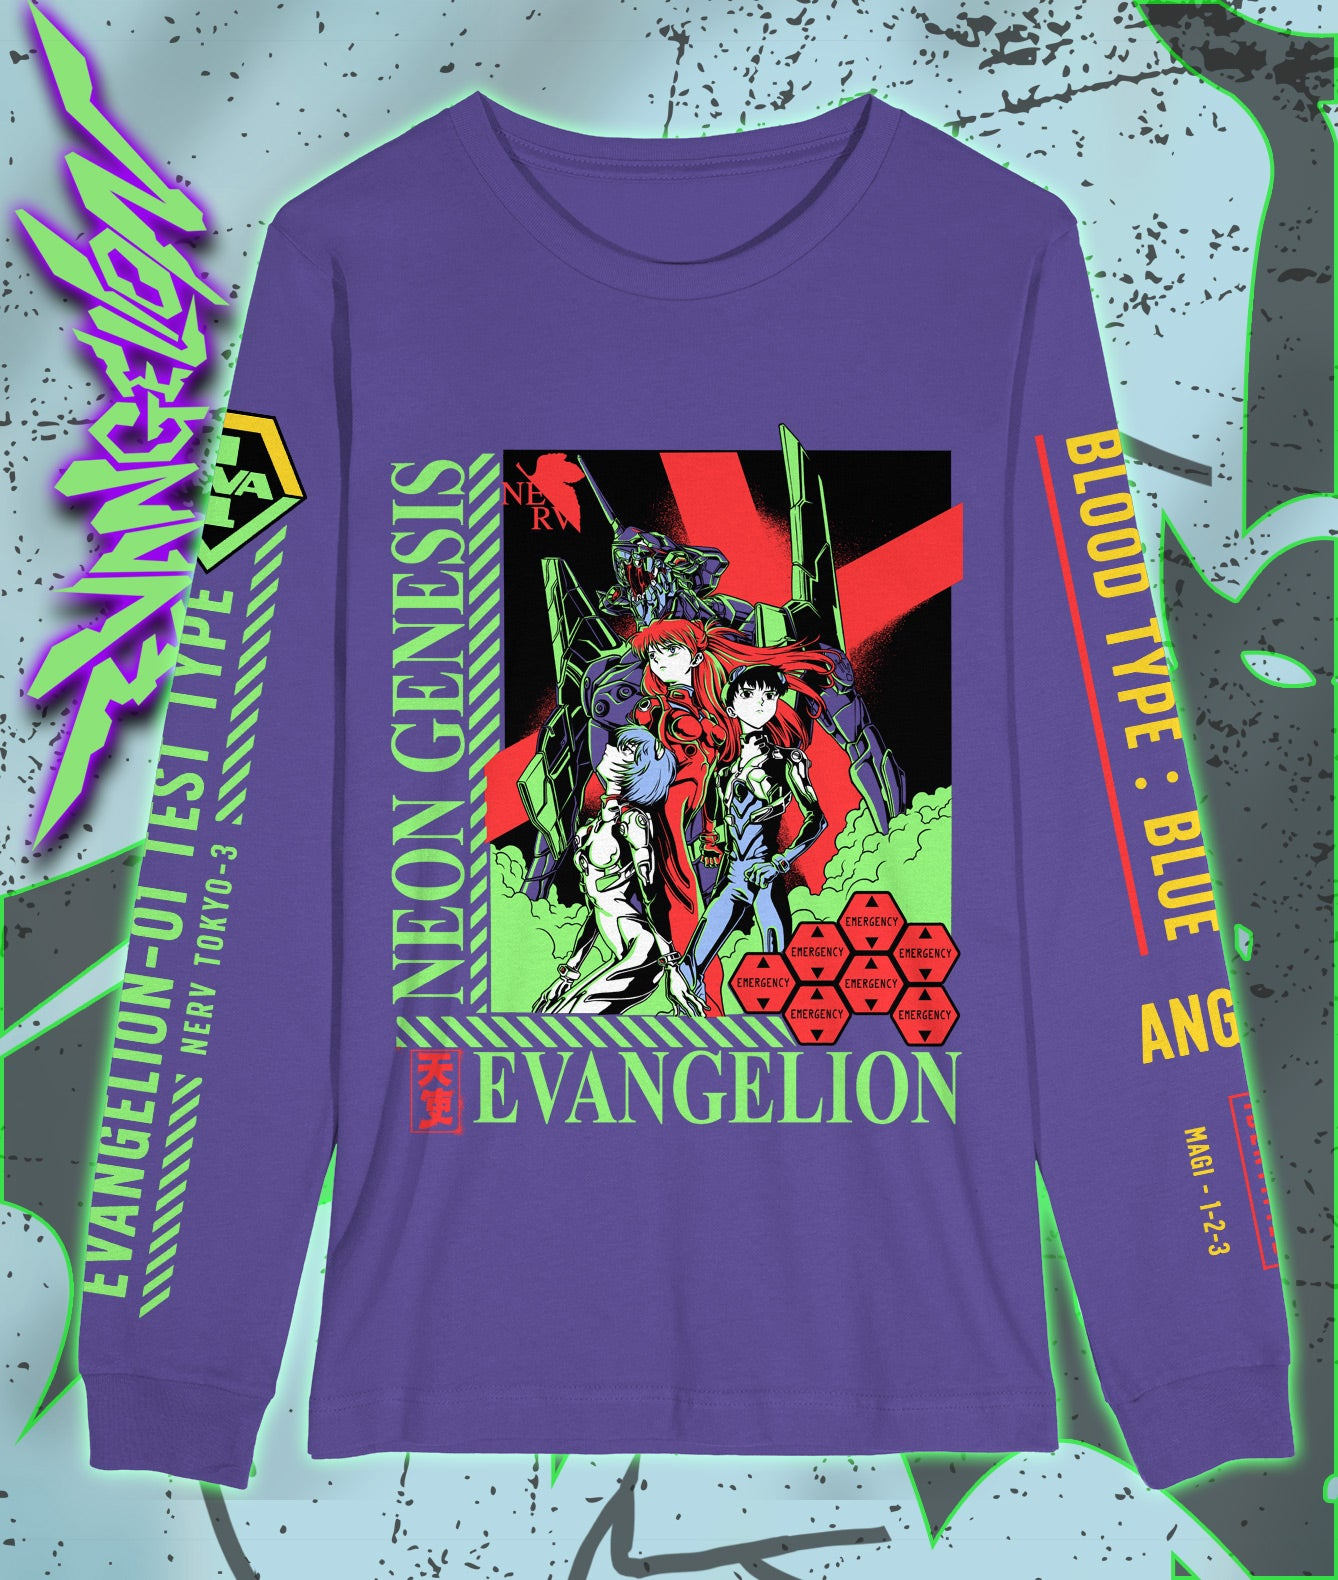 EVANGELION Purple Long Sleeve Shirt